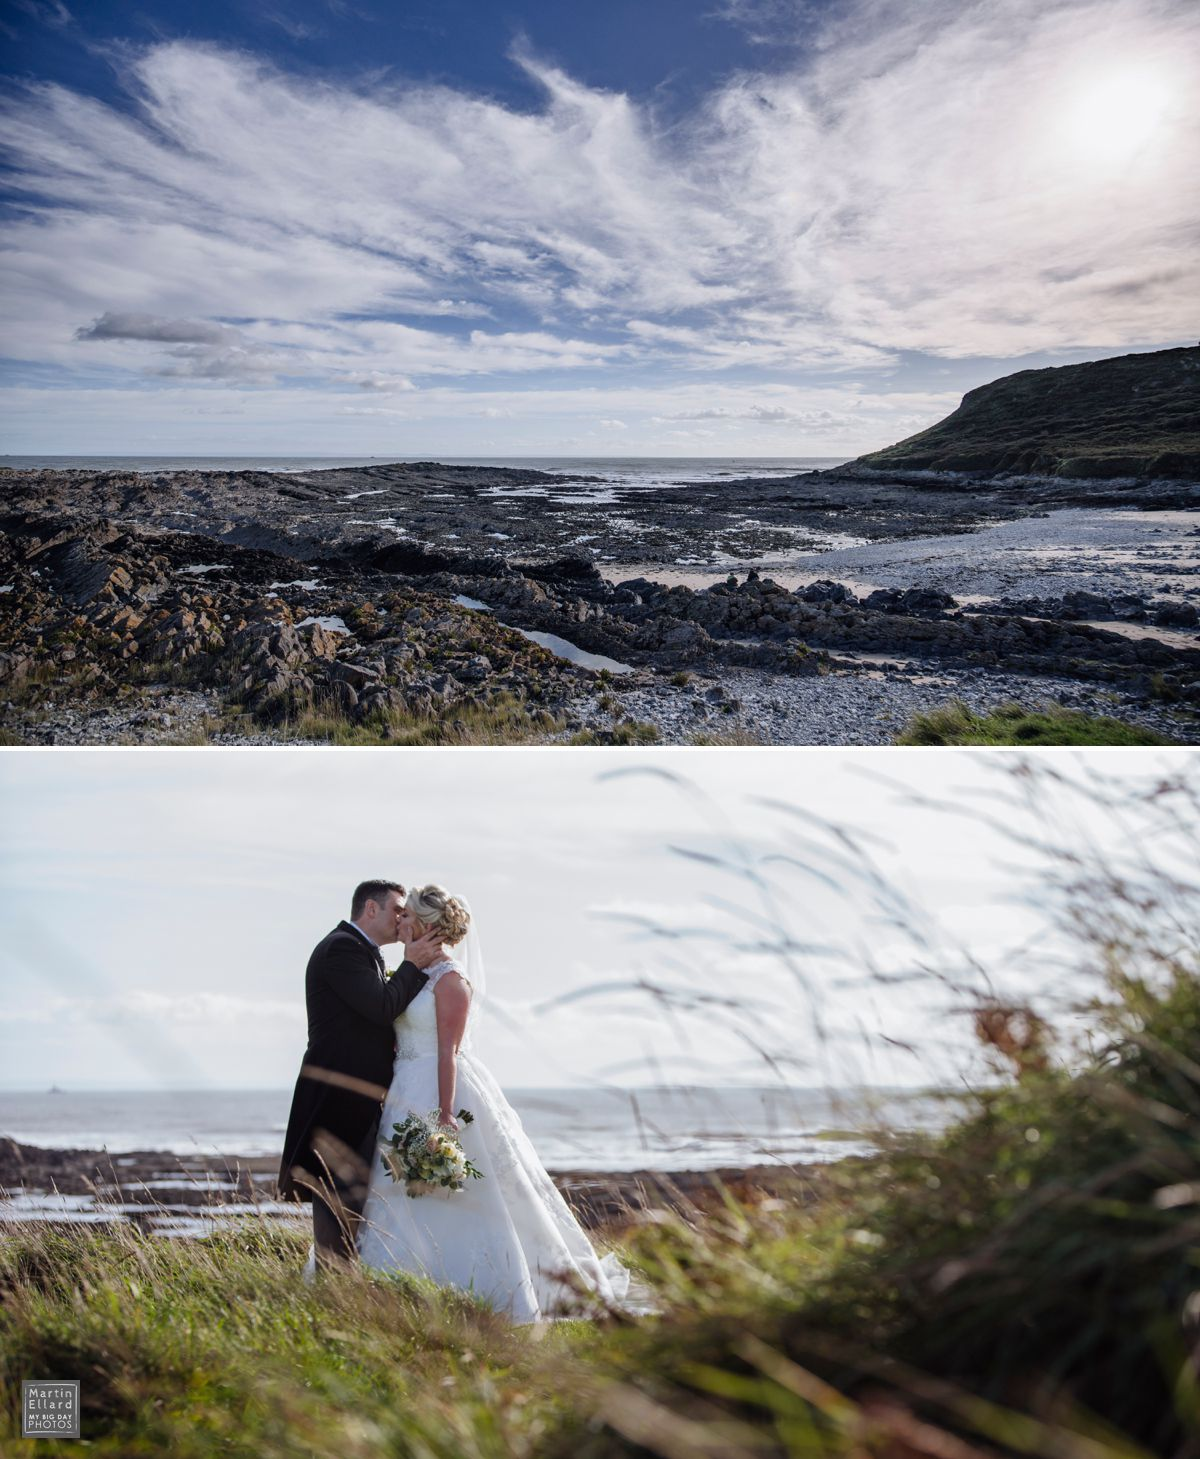 Fairyhill Gower wedding photographers Swansea